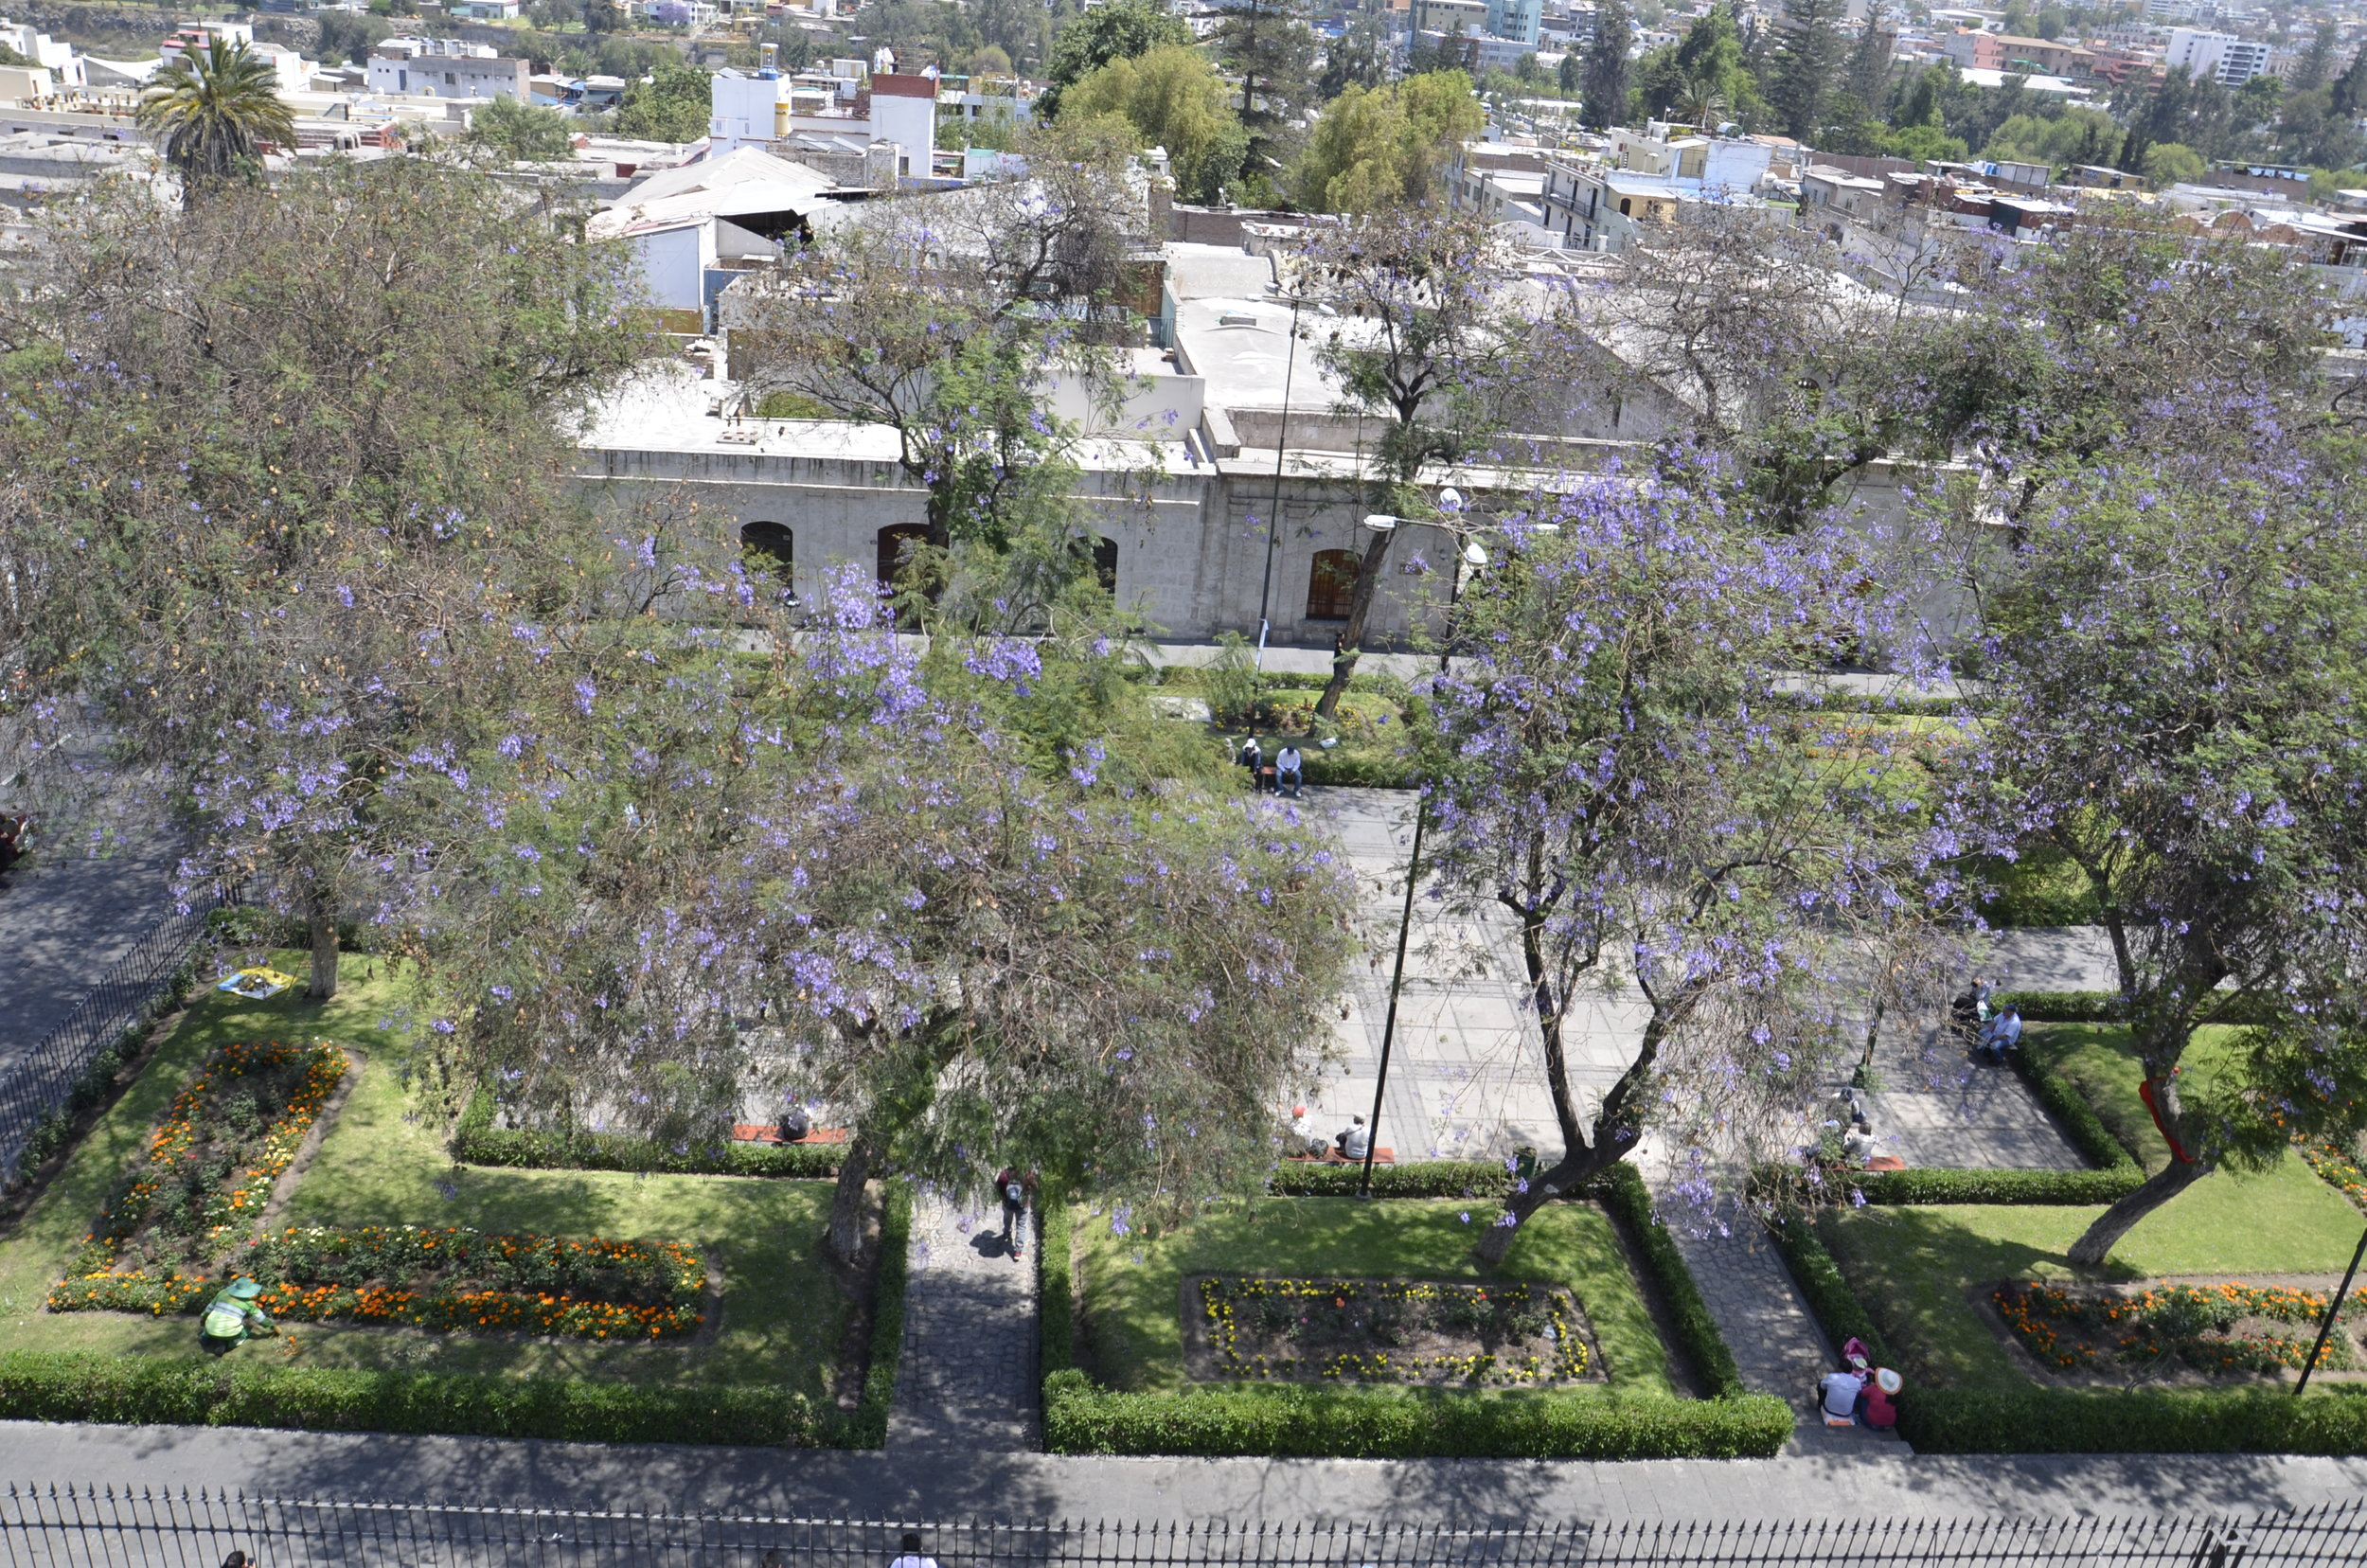 View into a nearby park from the bell tower of a convent